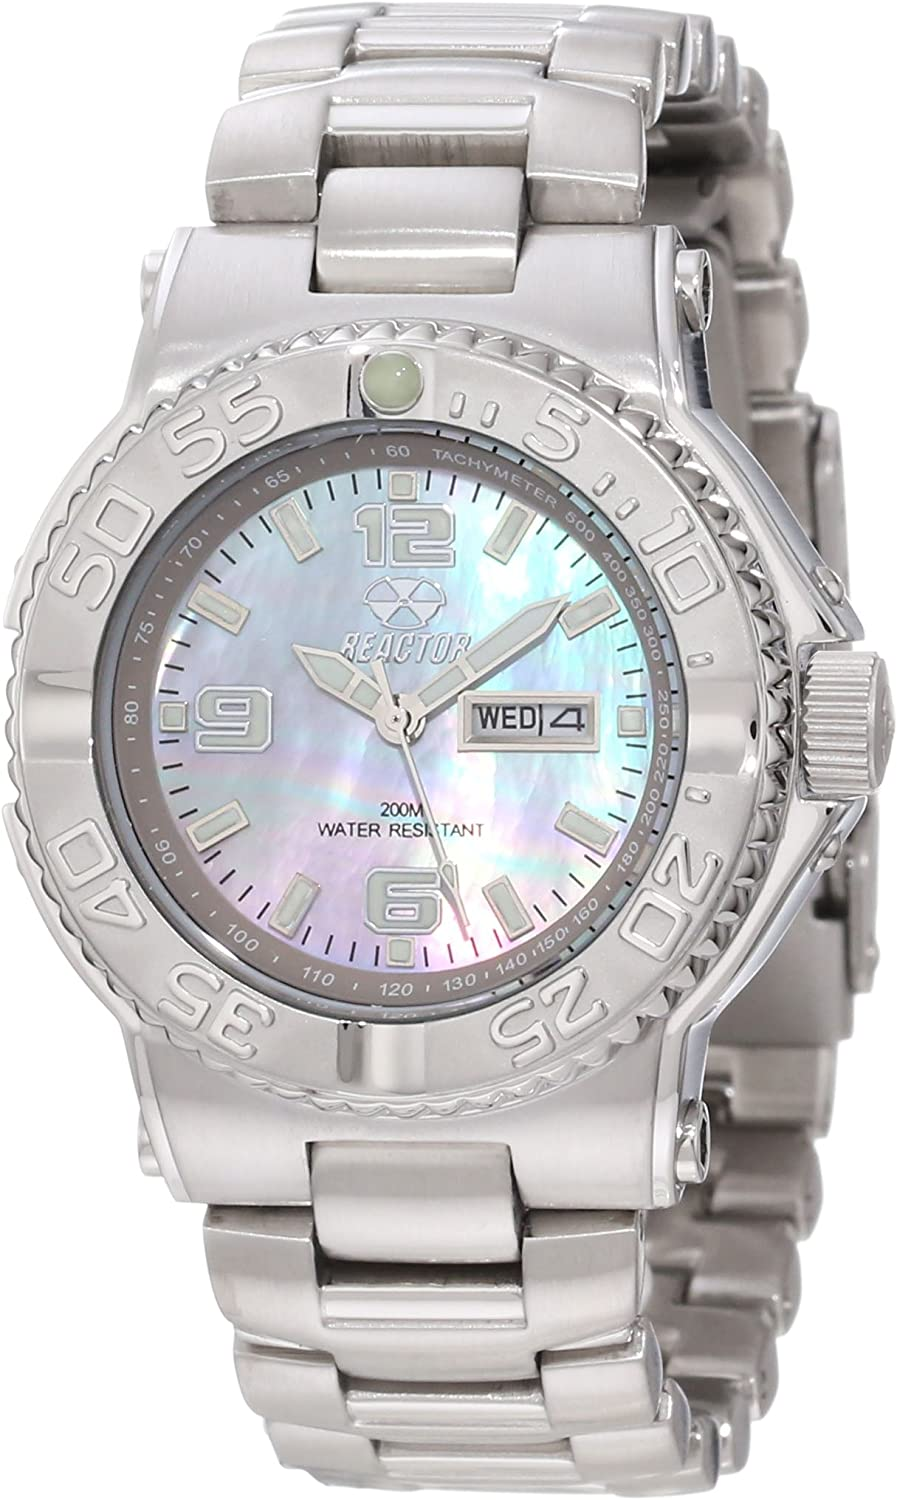 REACTOR Women s 77017 Classic Analog Mother-Of-Pearl Dial Watch